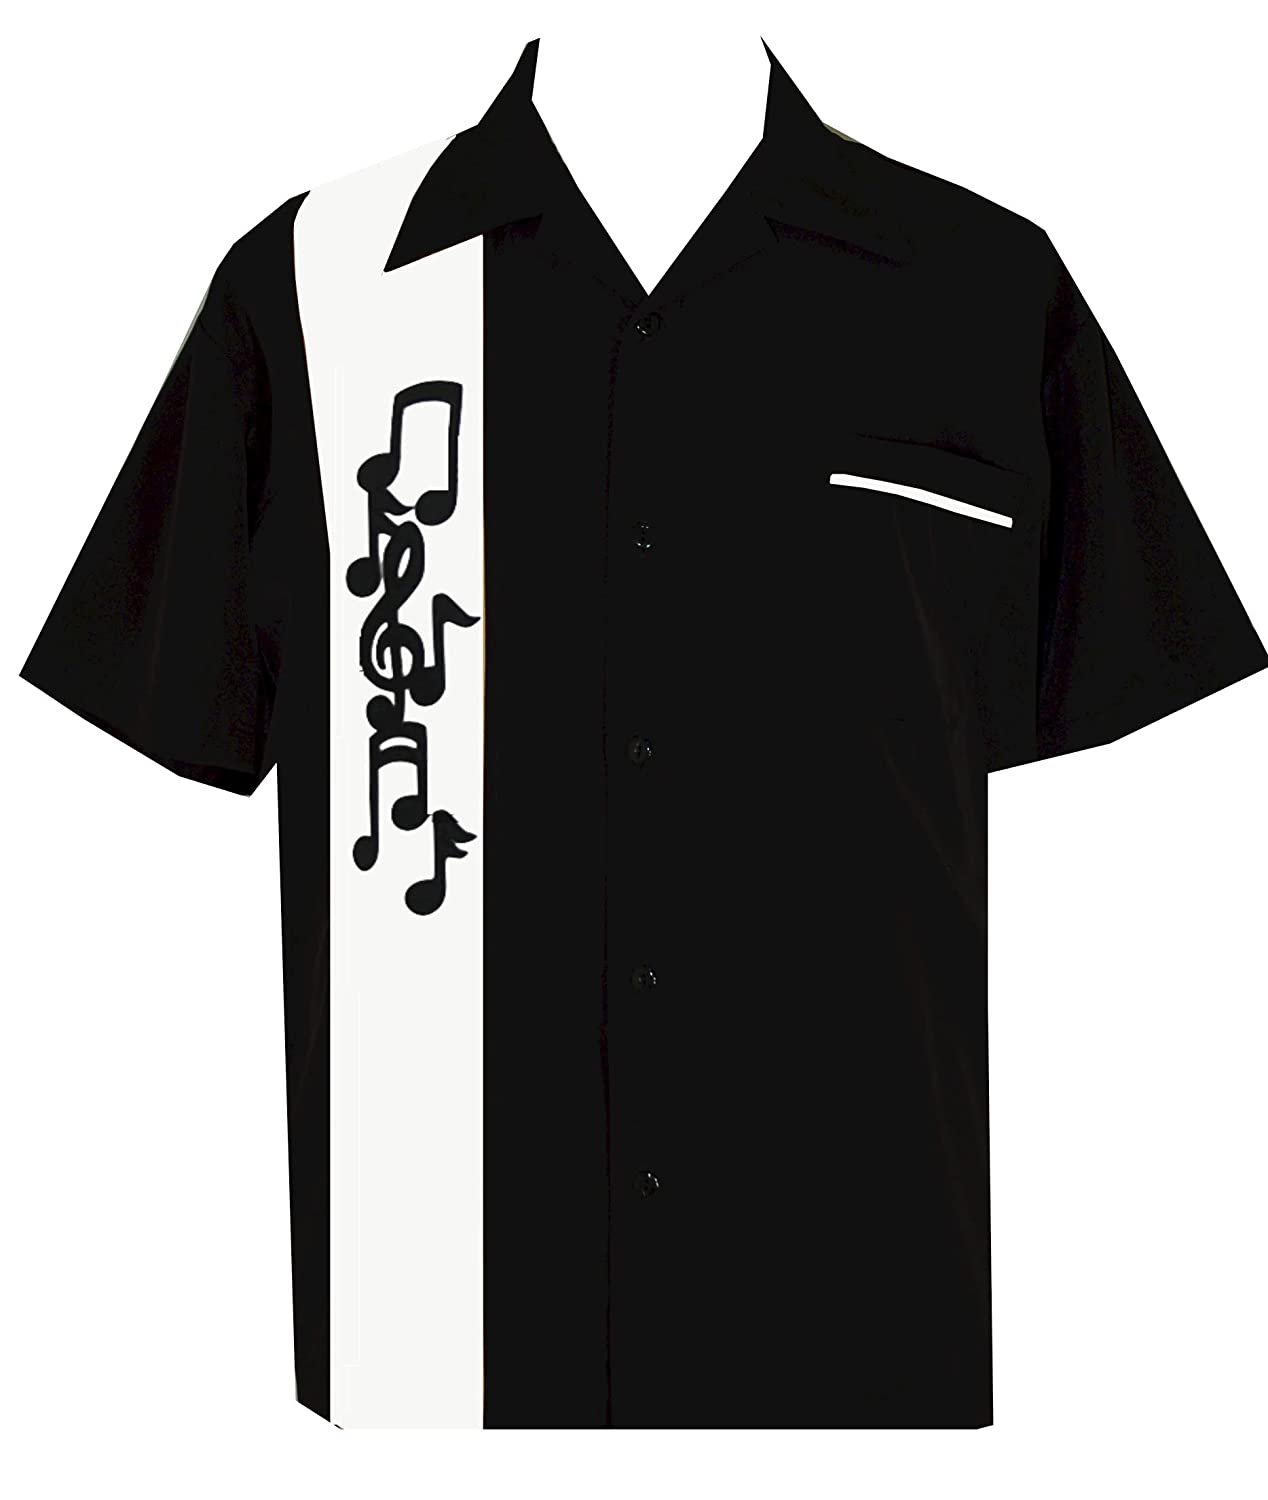 1950s Men's Clothing BeRetro Musicans Music Note Black Shirt $70.95 AT vintagedancer.com